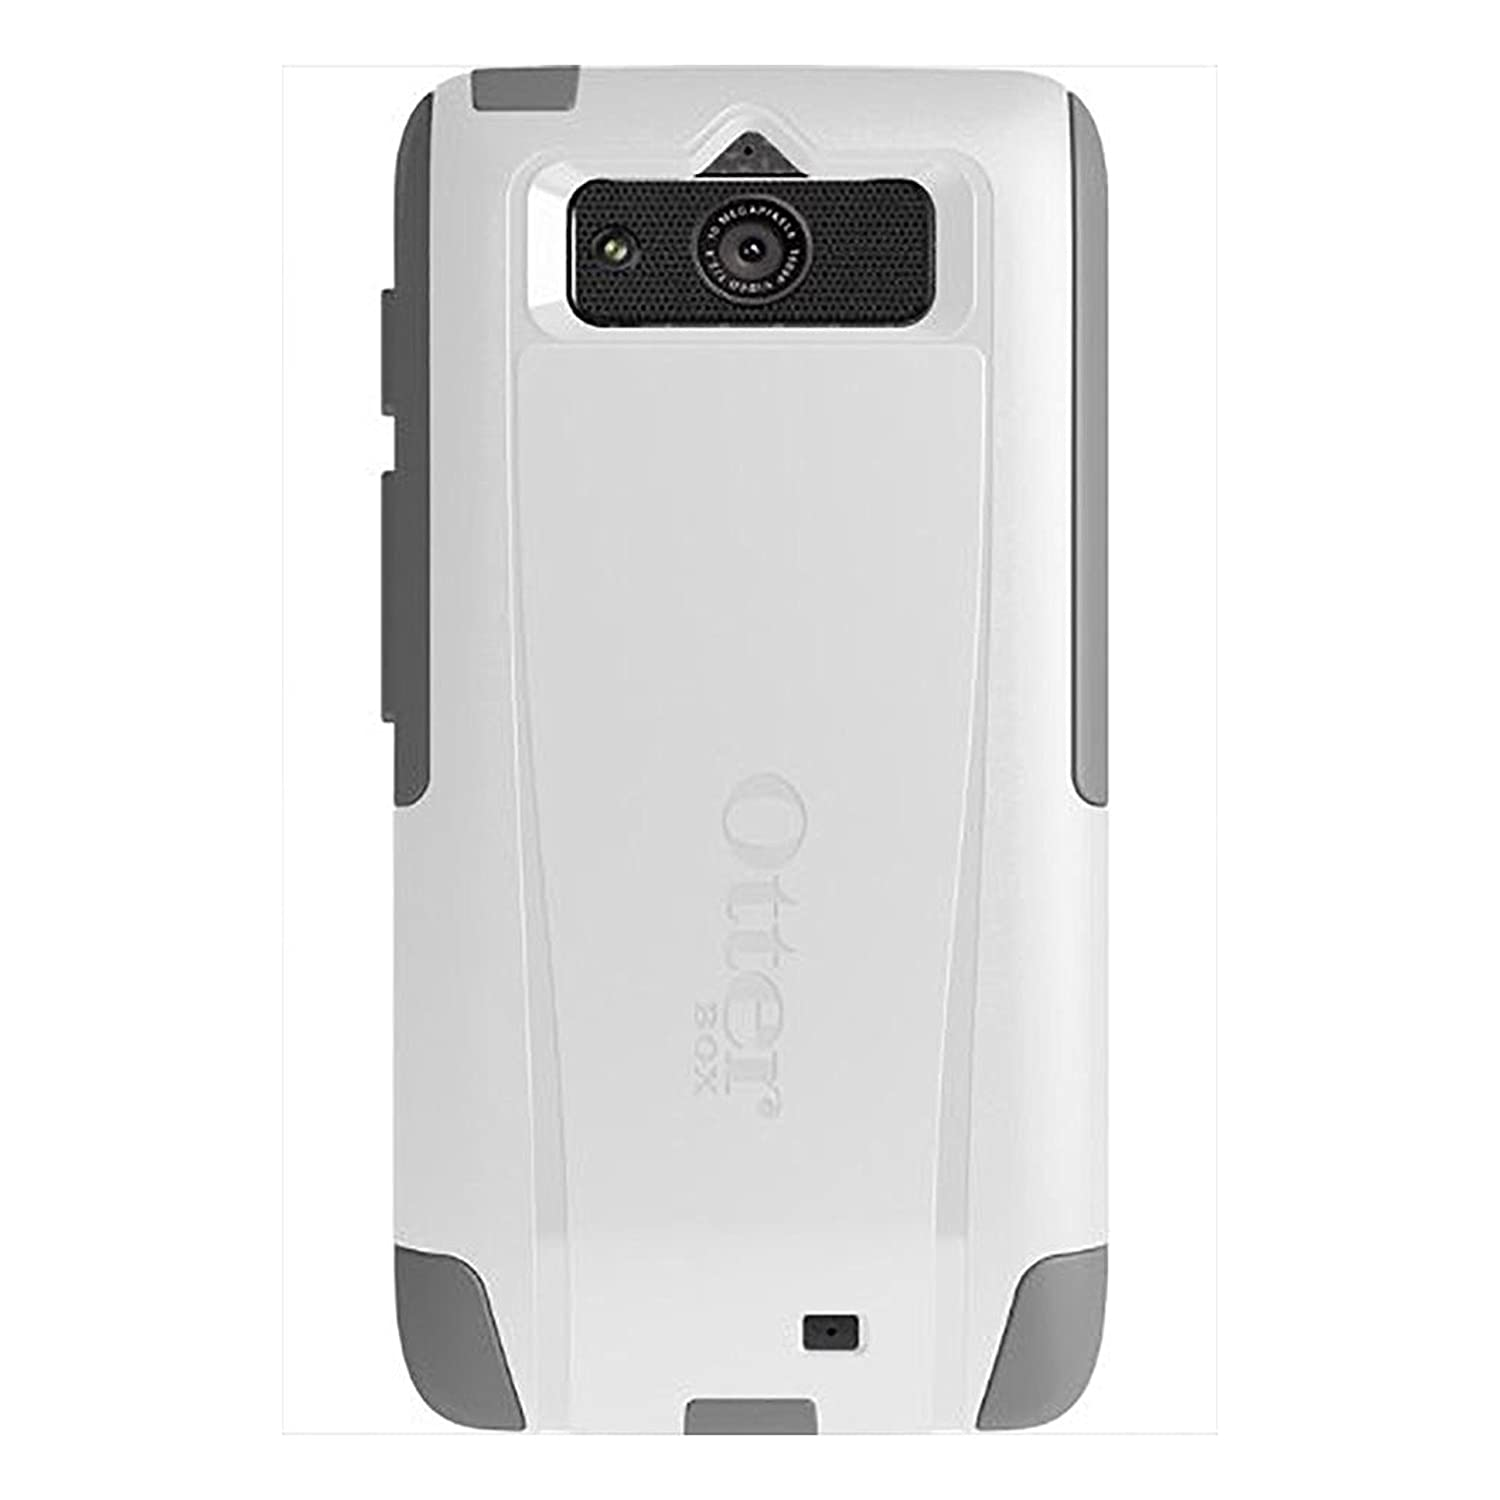 size 40 cdeb1 34515 OtterBox Commuter Series Case for Motorola DROID Mini - Retail Packaging -  Glacier